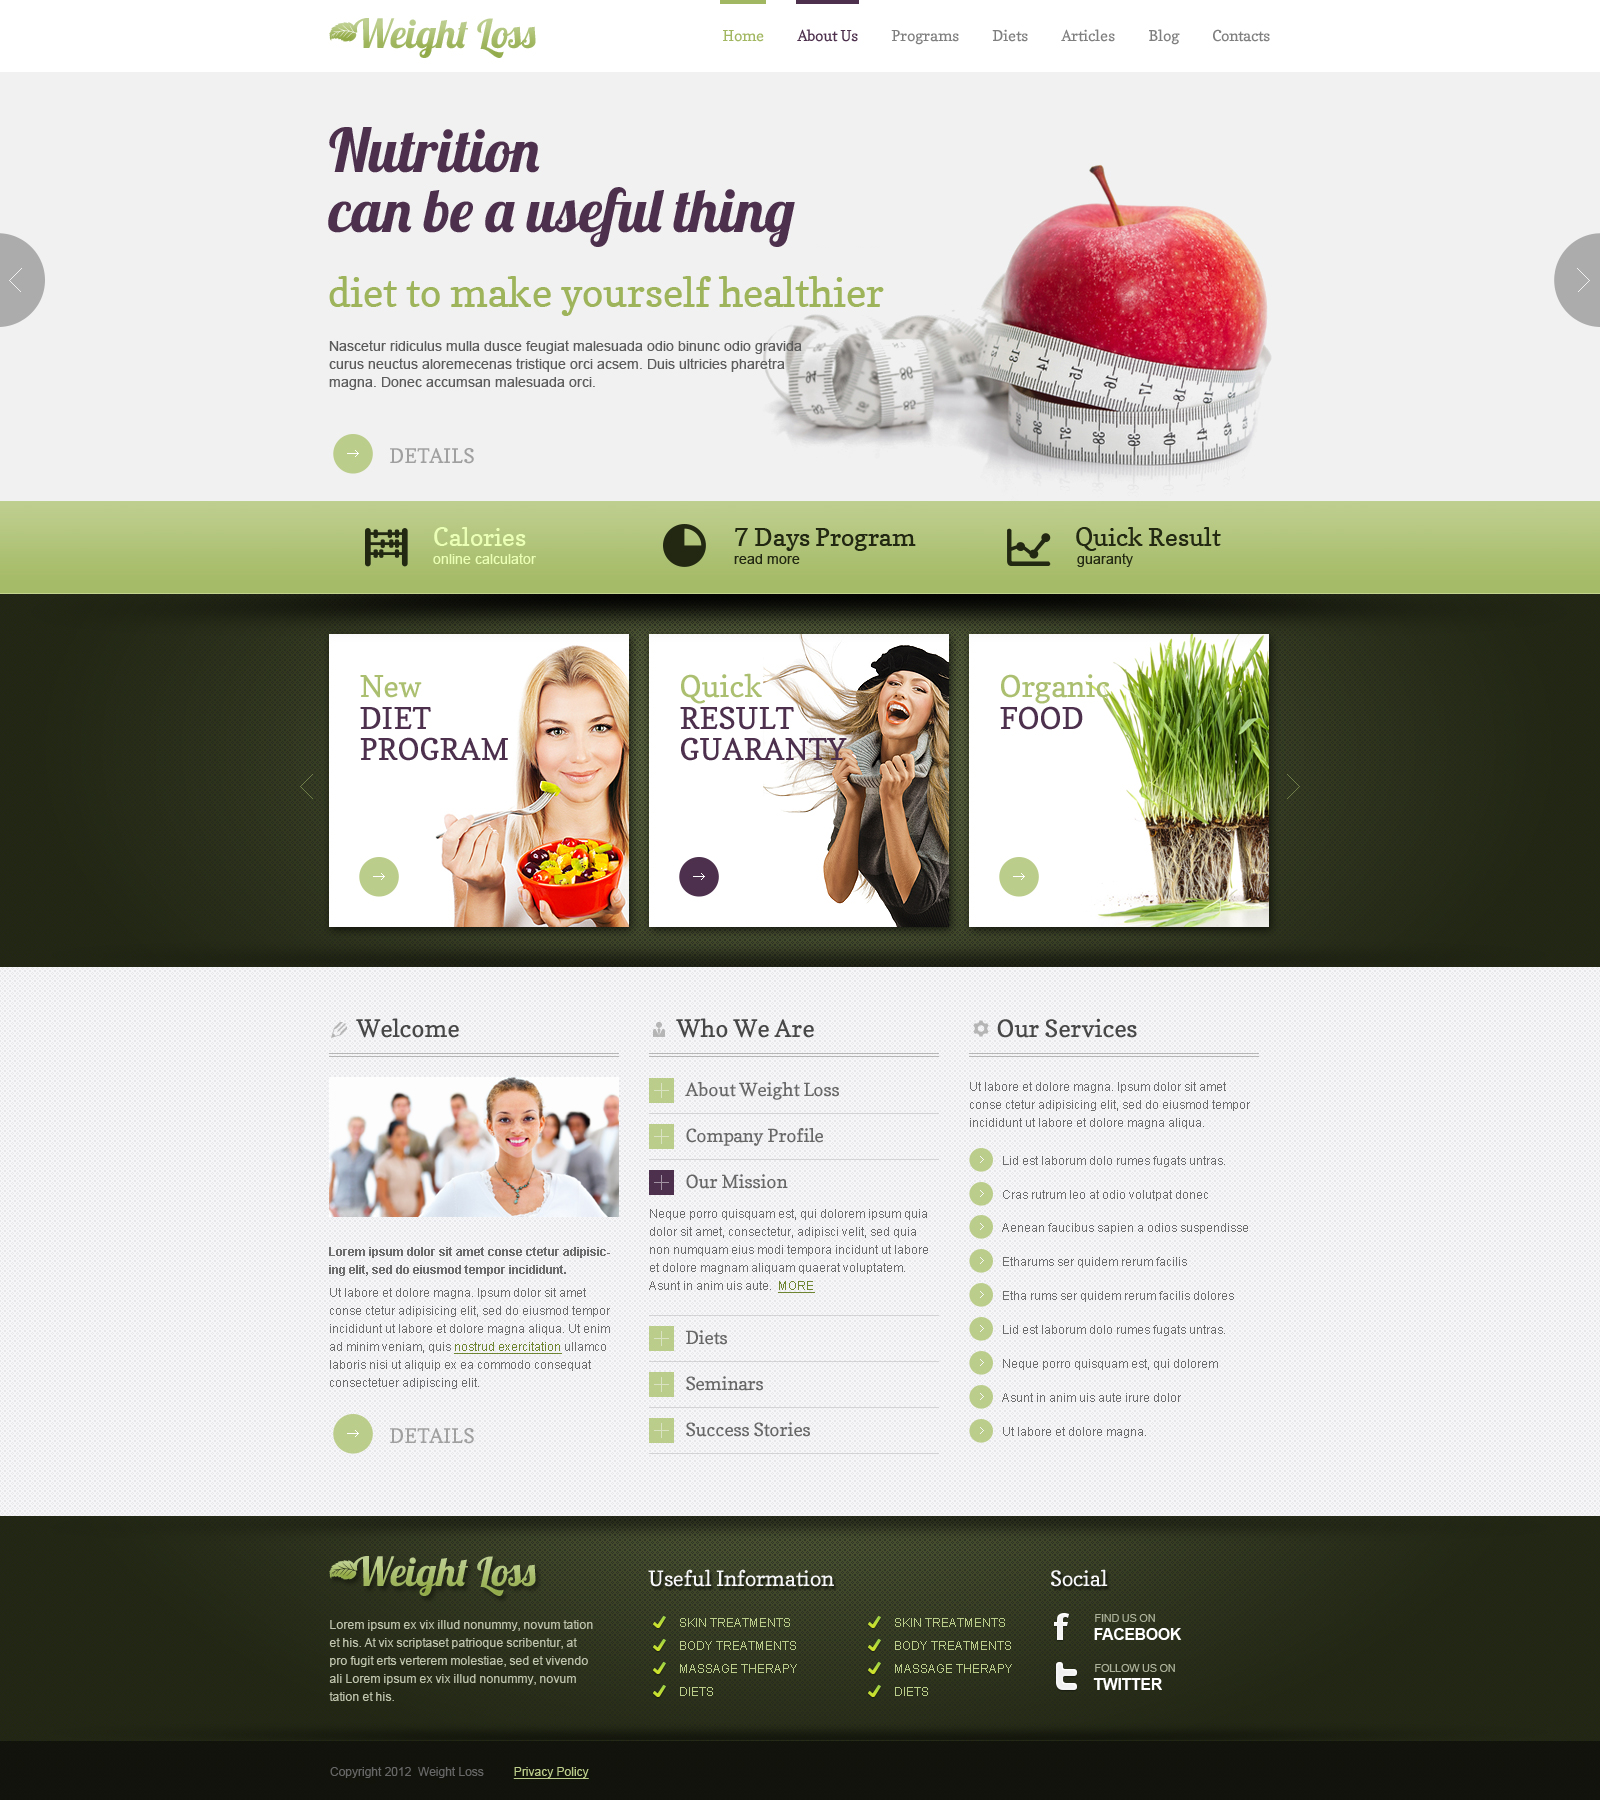 Weight loss joomla responsive template (theme)